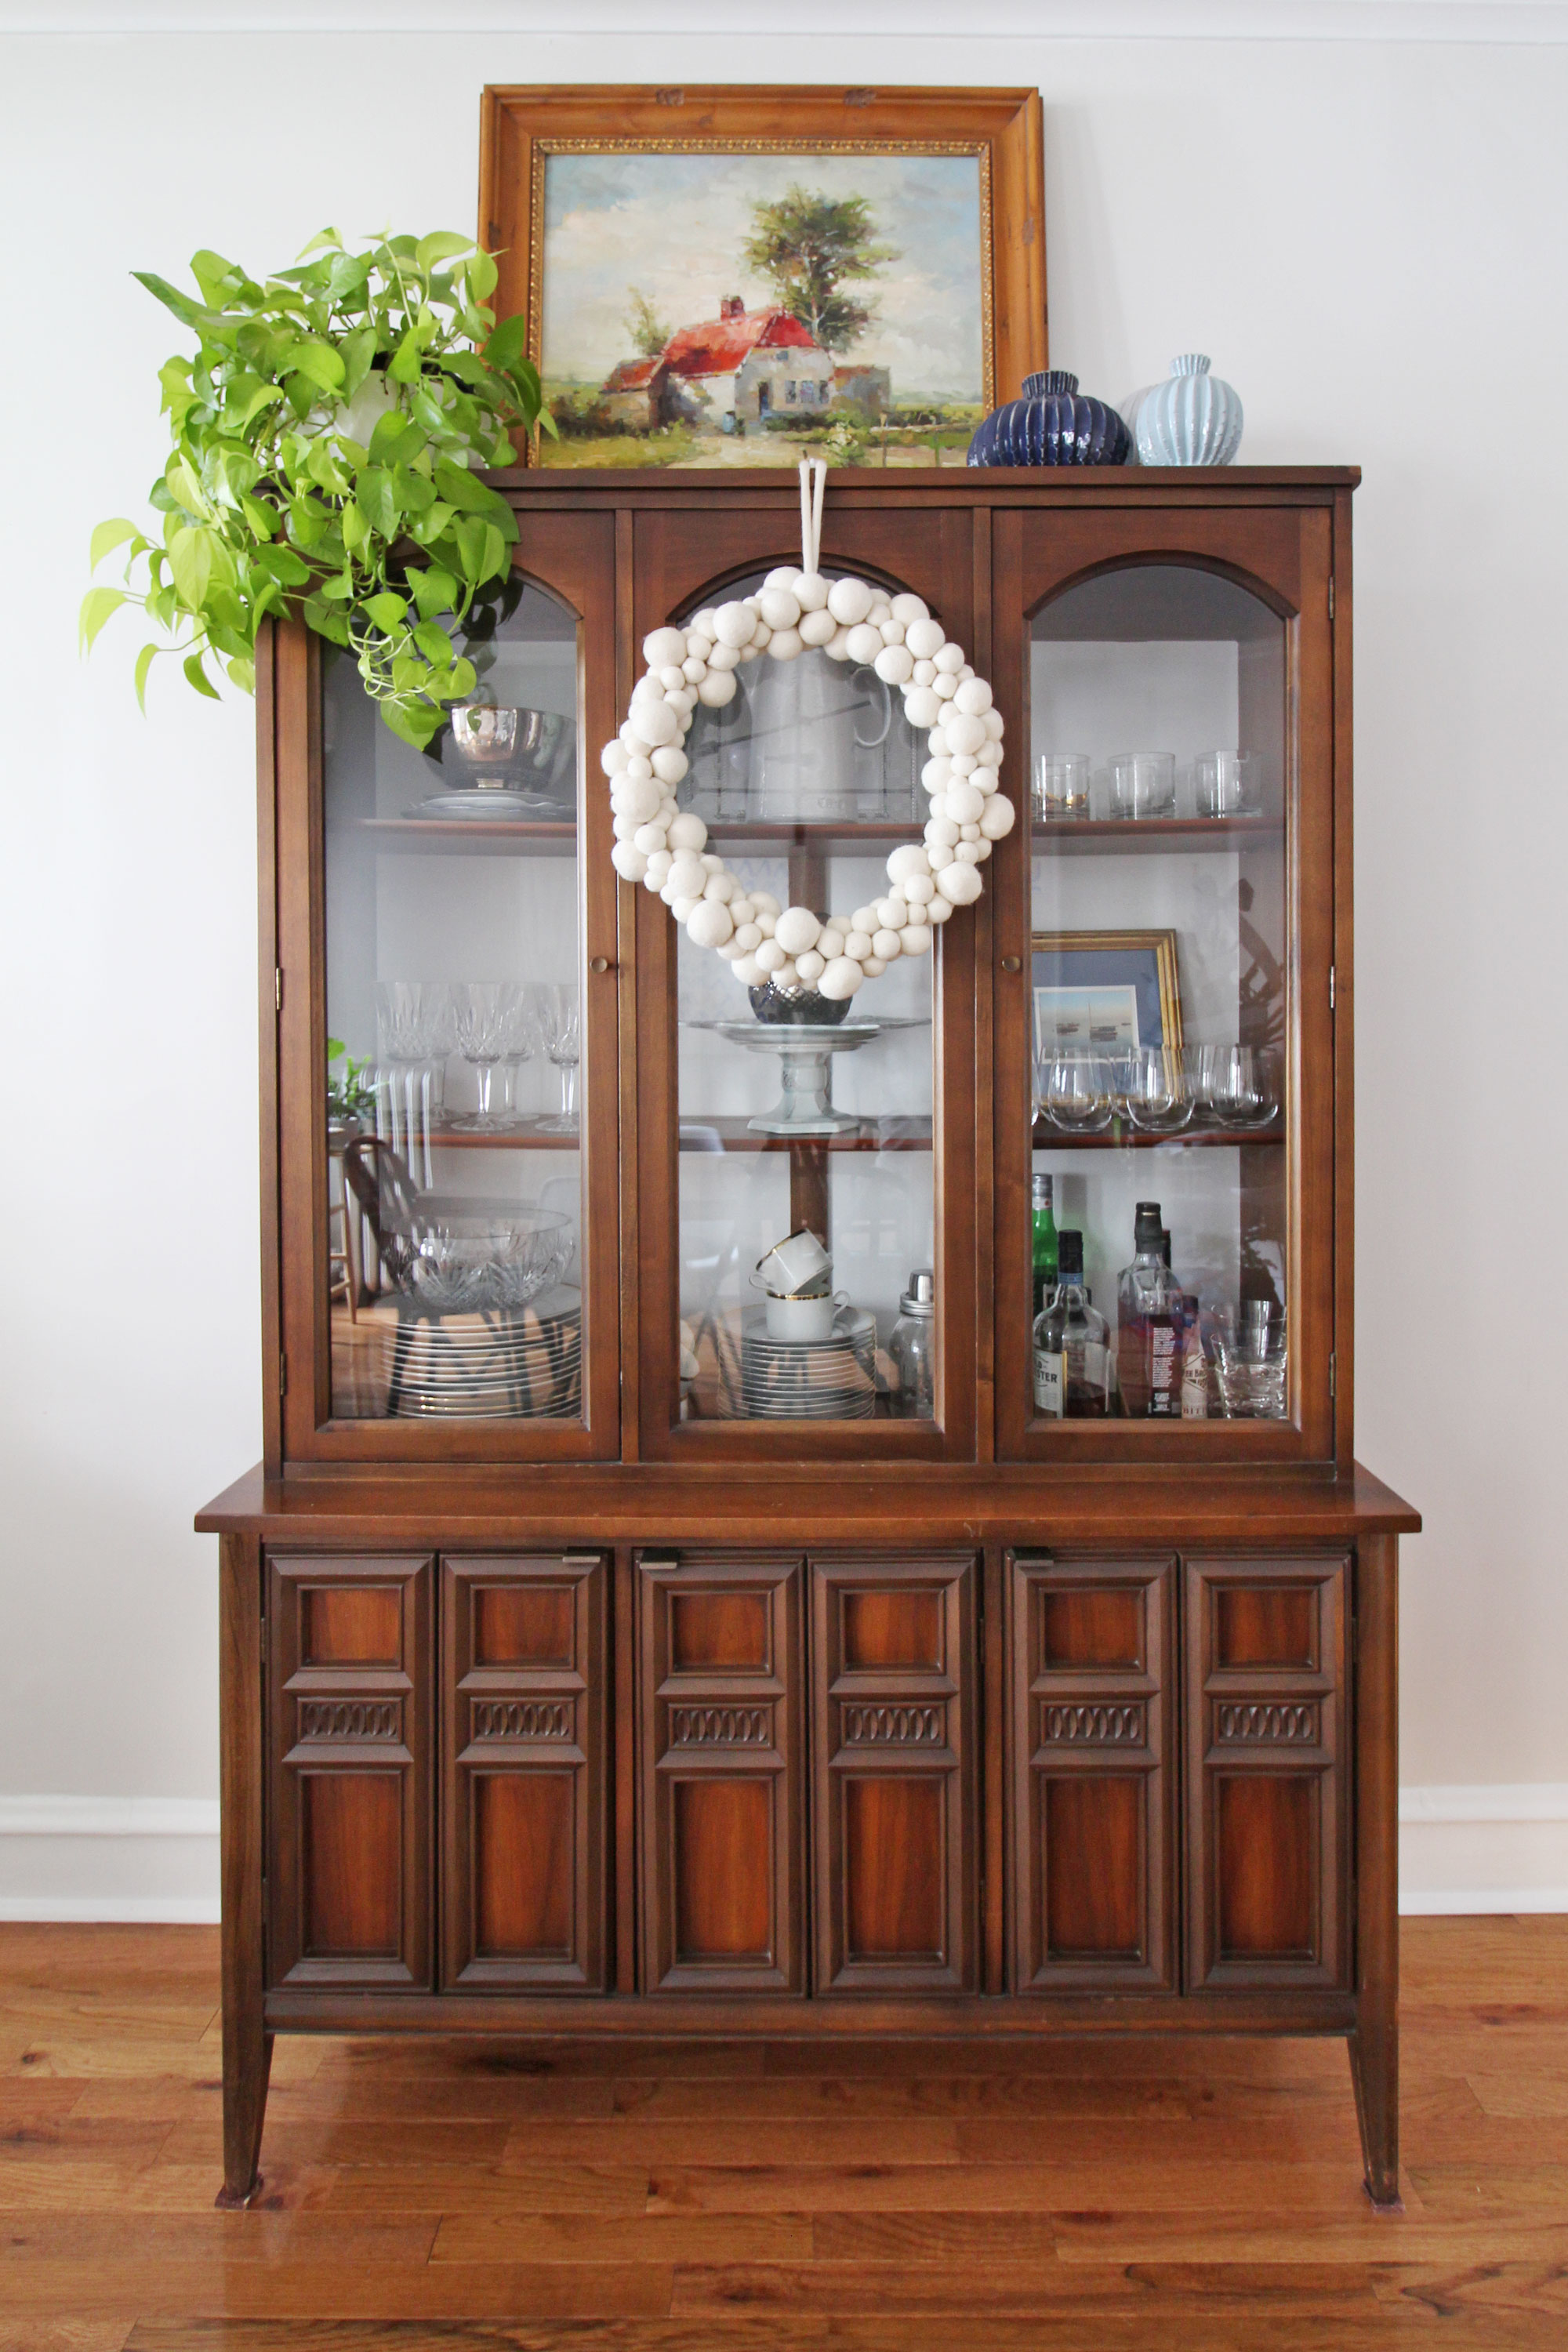 A simple way to add a little bit of Christmas cheer in your home is to hang a wreath in an unexpected place in your home. Here, I added a white felt ball wreath to our mid-century modern china cabinet. It's the perfect touch of holiday spirit for our dining room. Christmas decorating can be simple and easy!